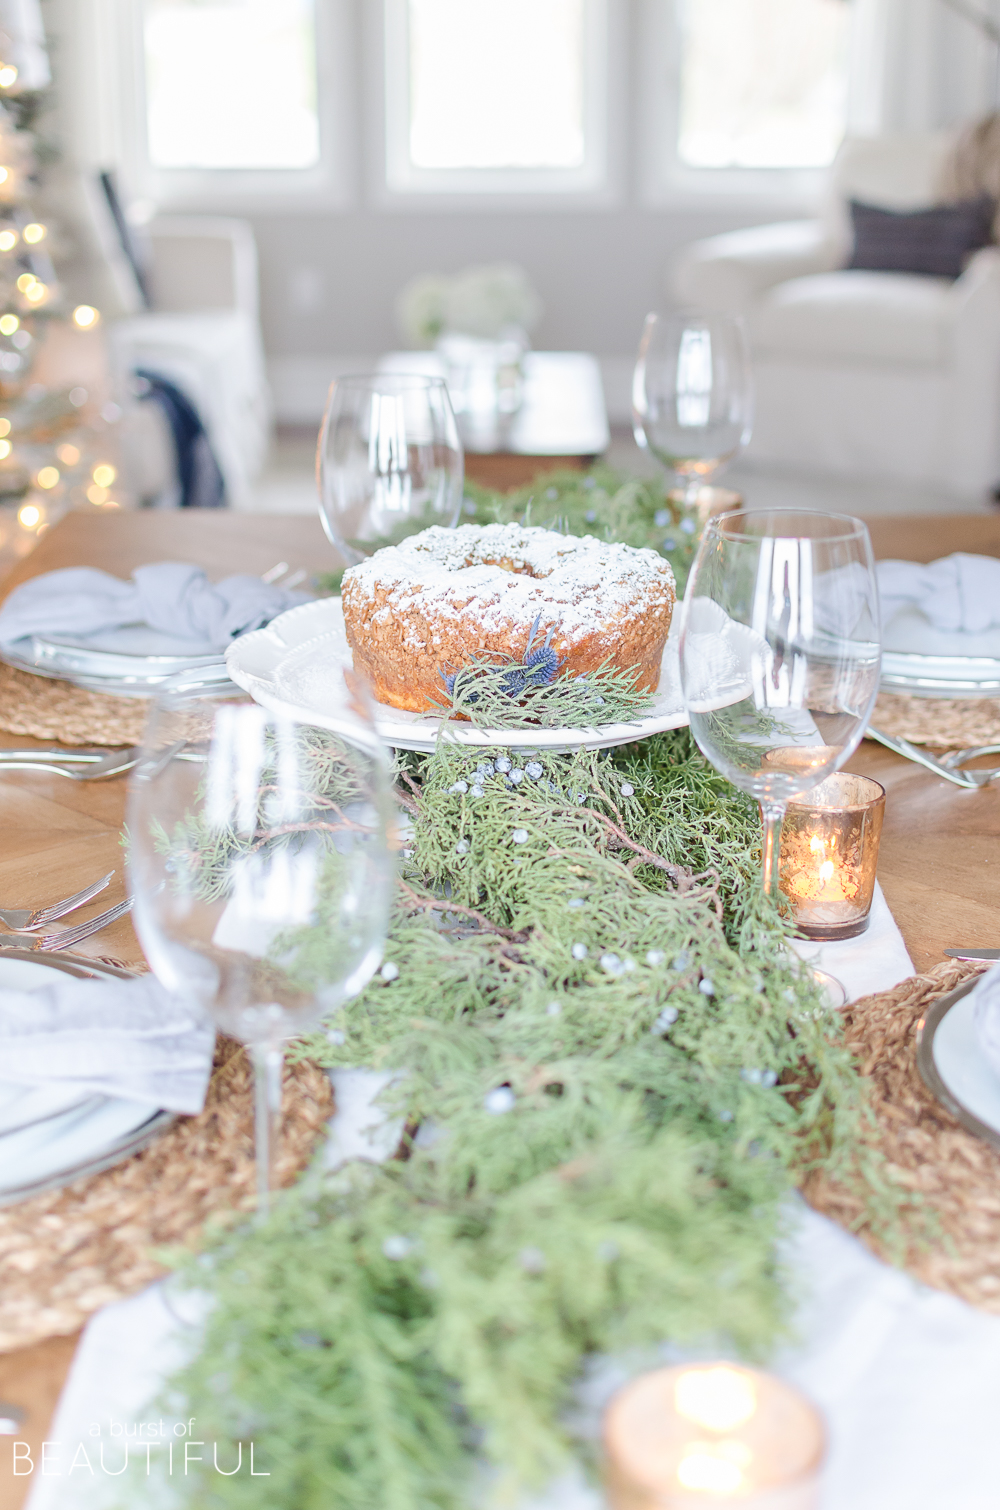 Simple Christmas Tablescape with Fresh Greenery - A Burst of Beautiful